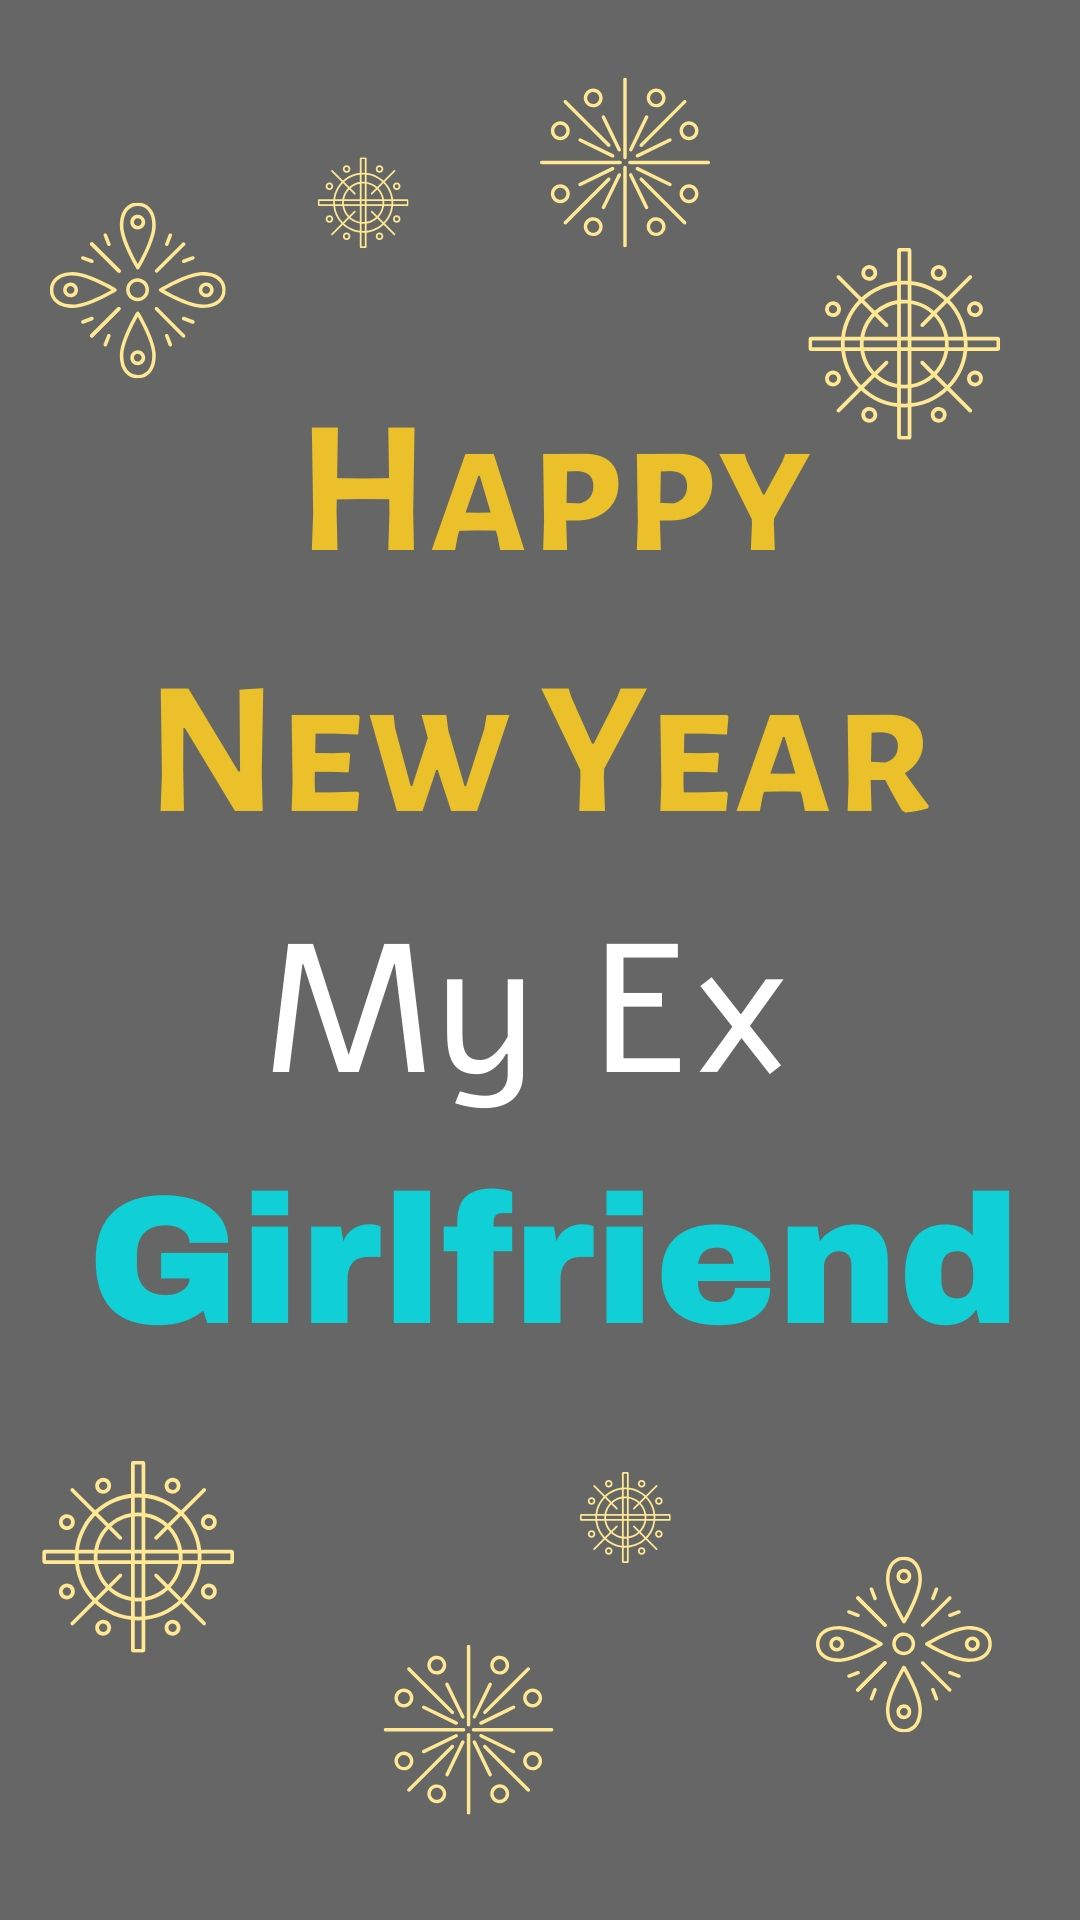 Happy New Year 2021 Wishes for Ex Girlfriend